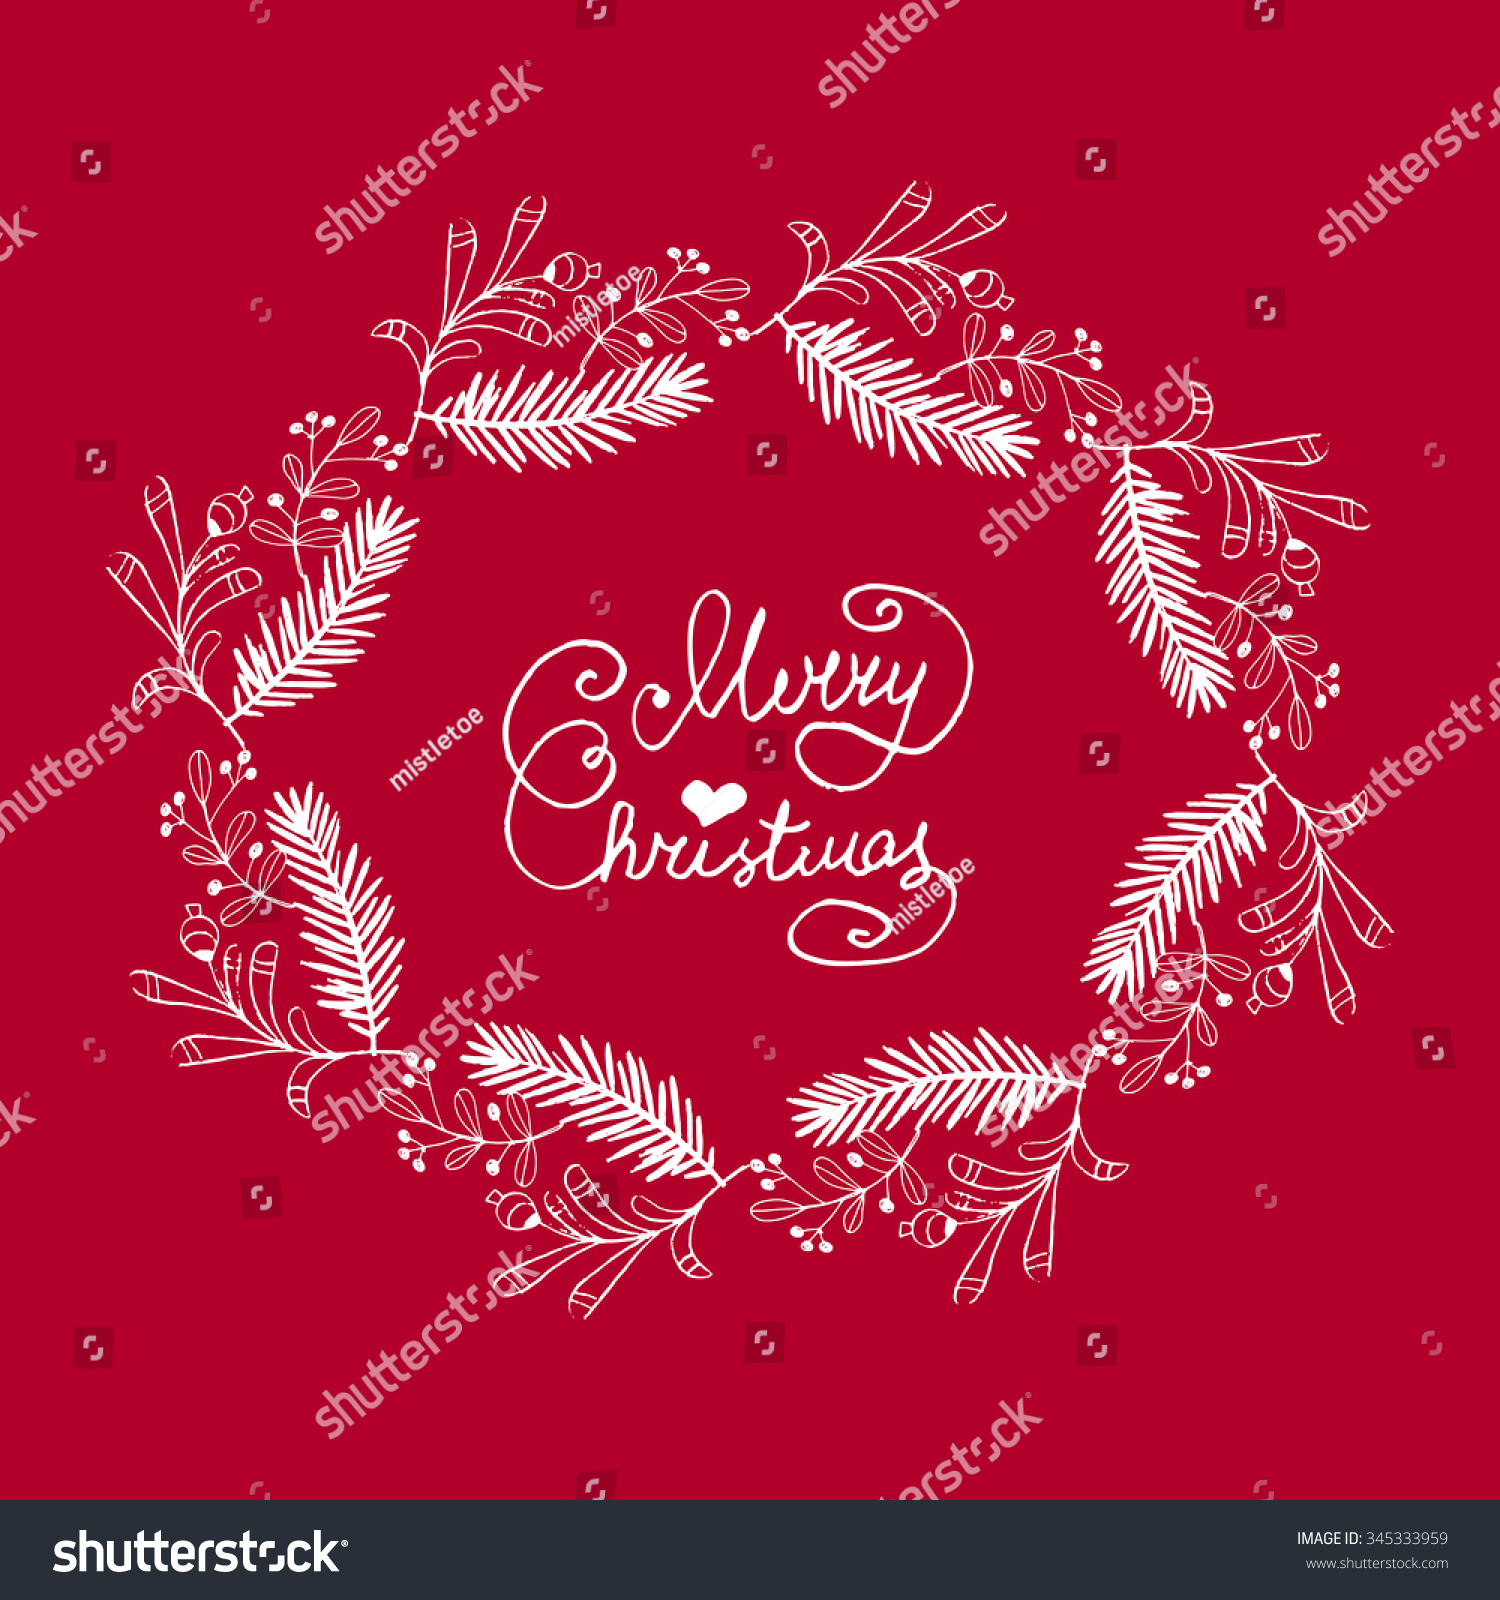 Unique Haddrawn Christmas Greeting Card Merry Christmas Stock Vector